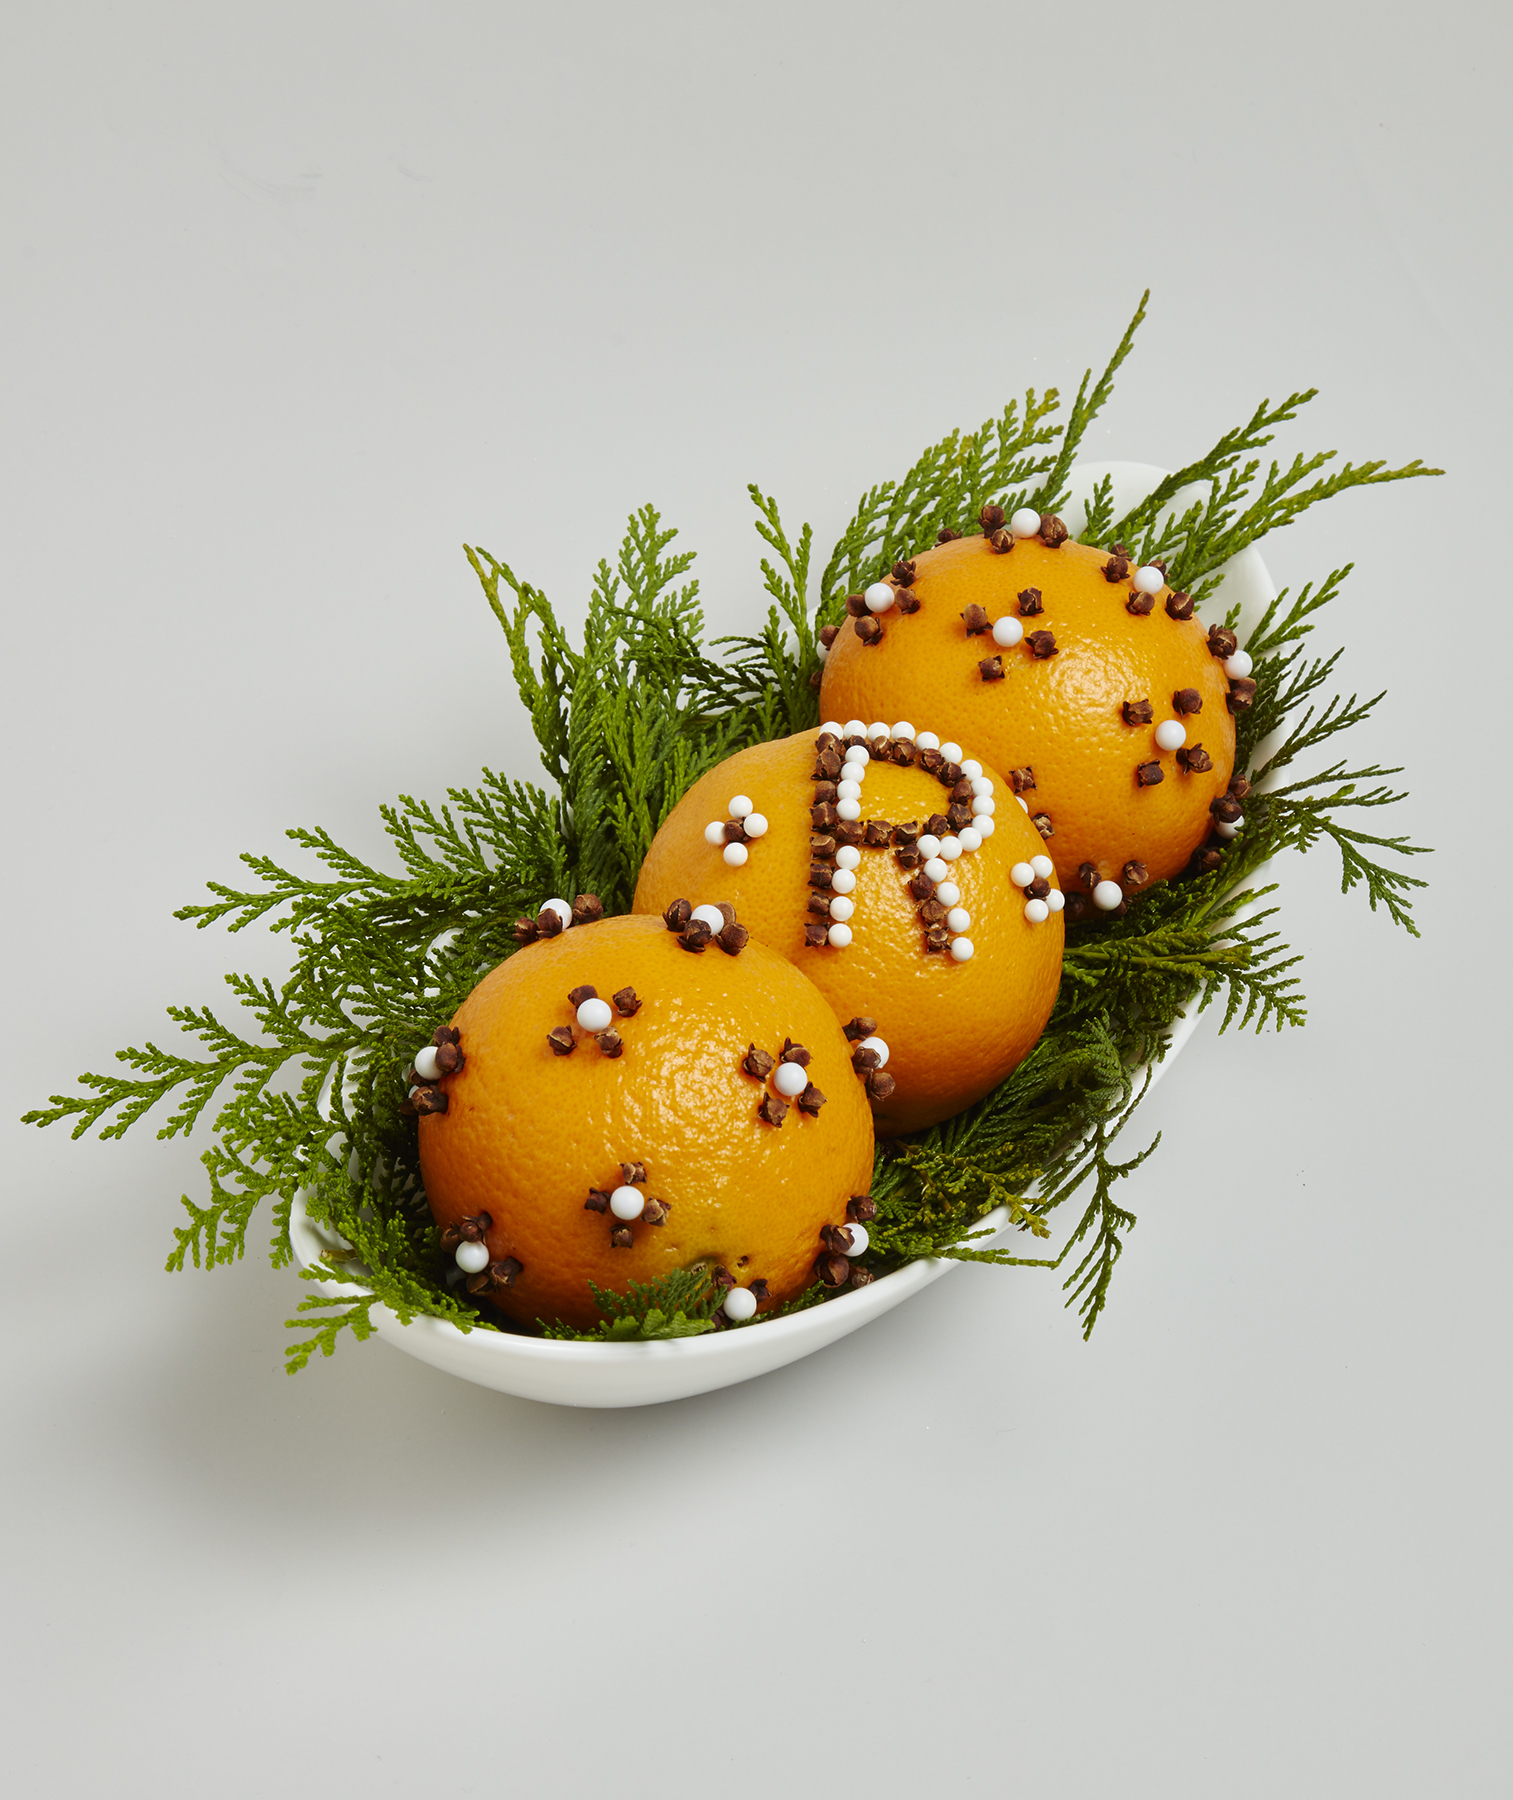 Christmas crafts ideas - Orange Clove Pomanders